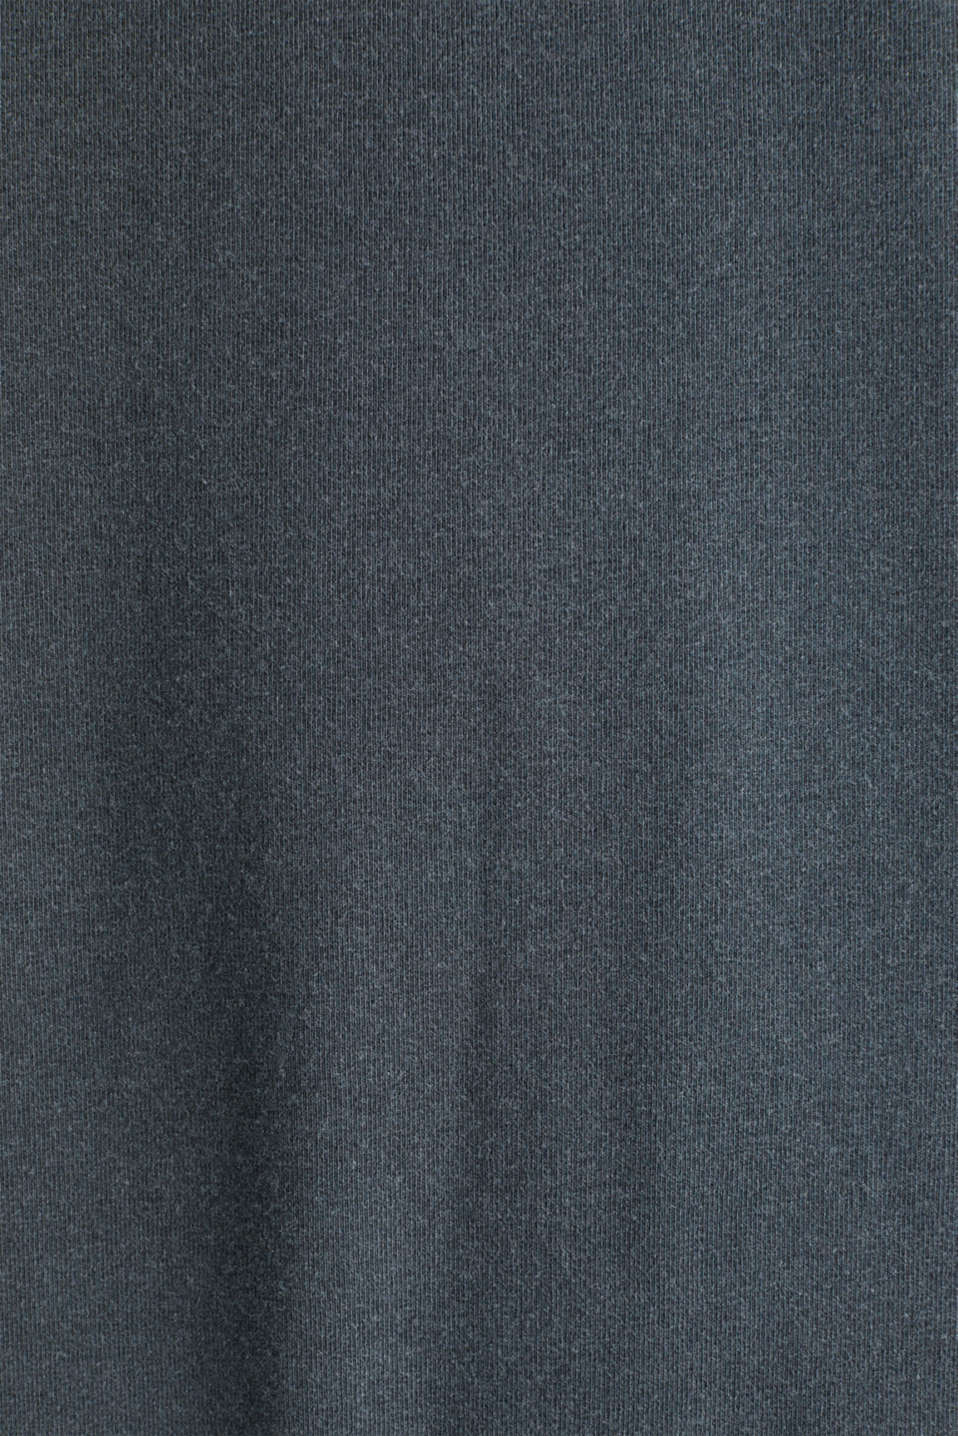 Midi dress made of jersey and cloth, GREY, detail image number 4